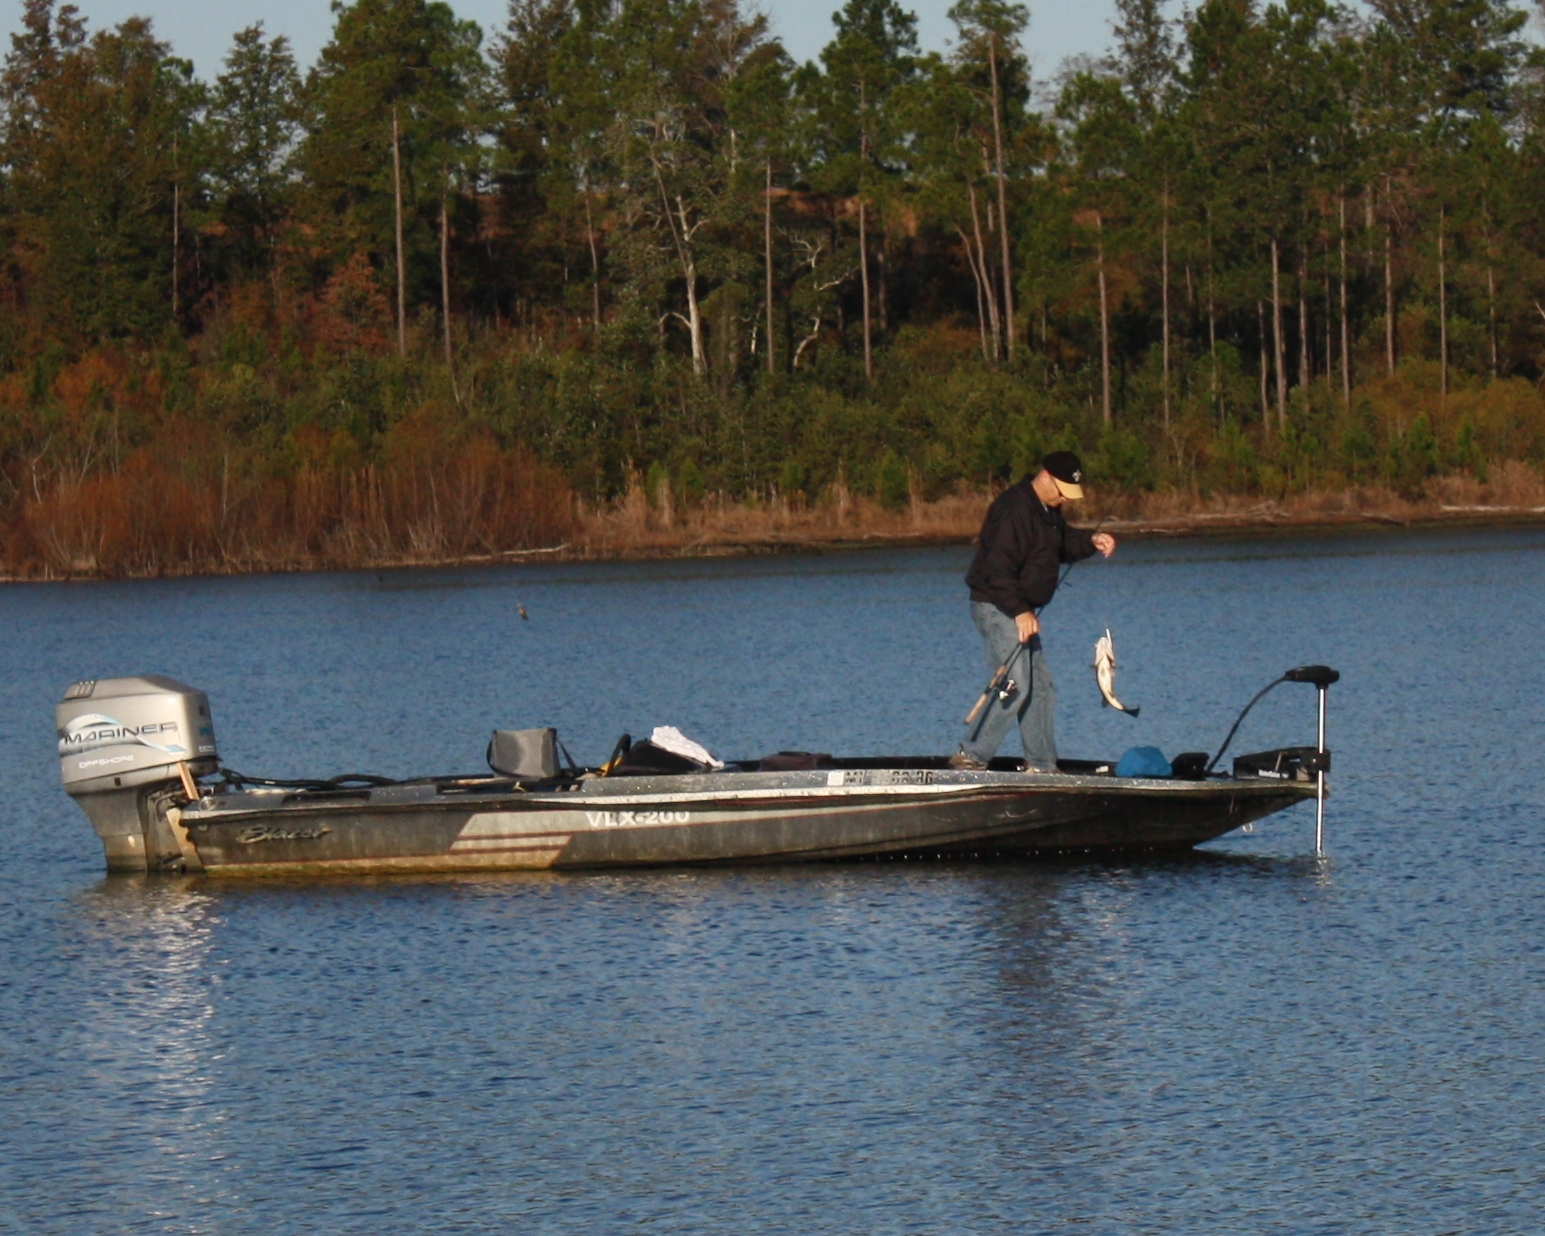 Avid anglers know this also signals the start of some of the best winter bass fishing on area lakes.